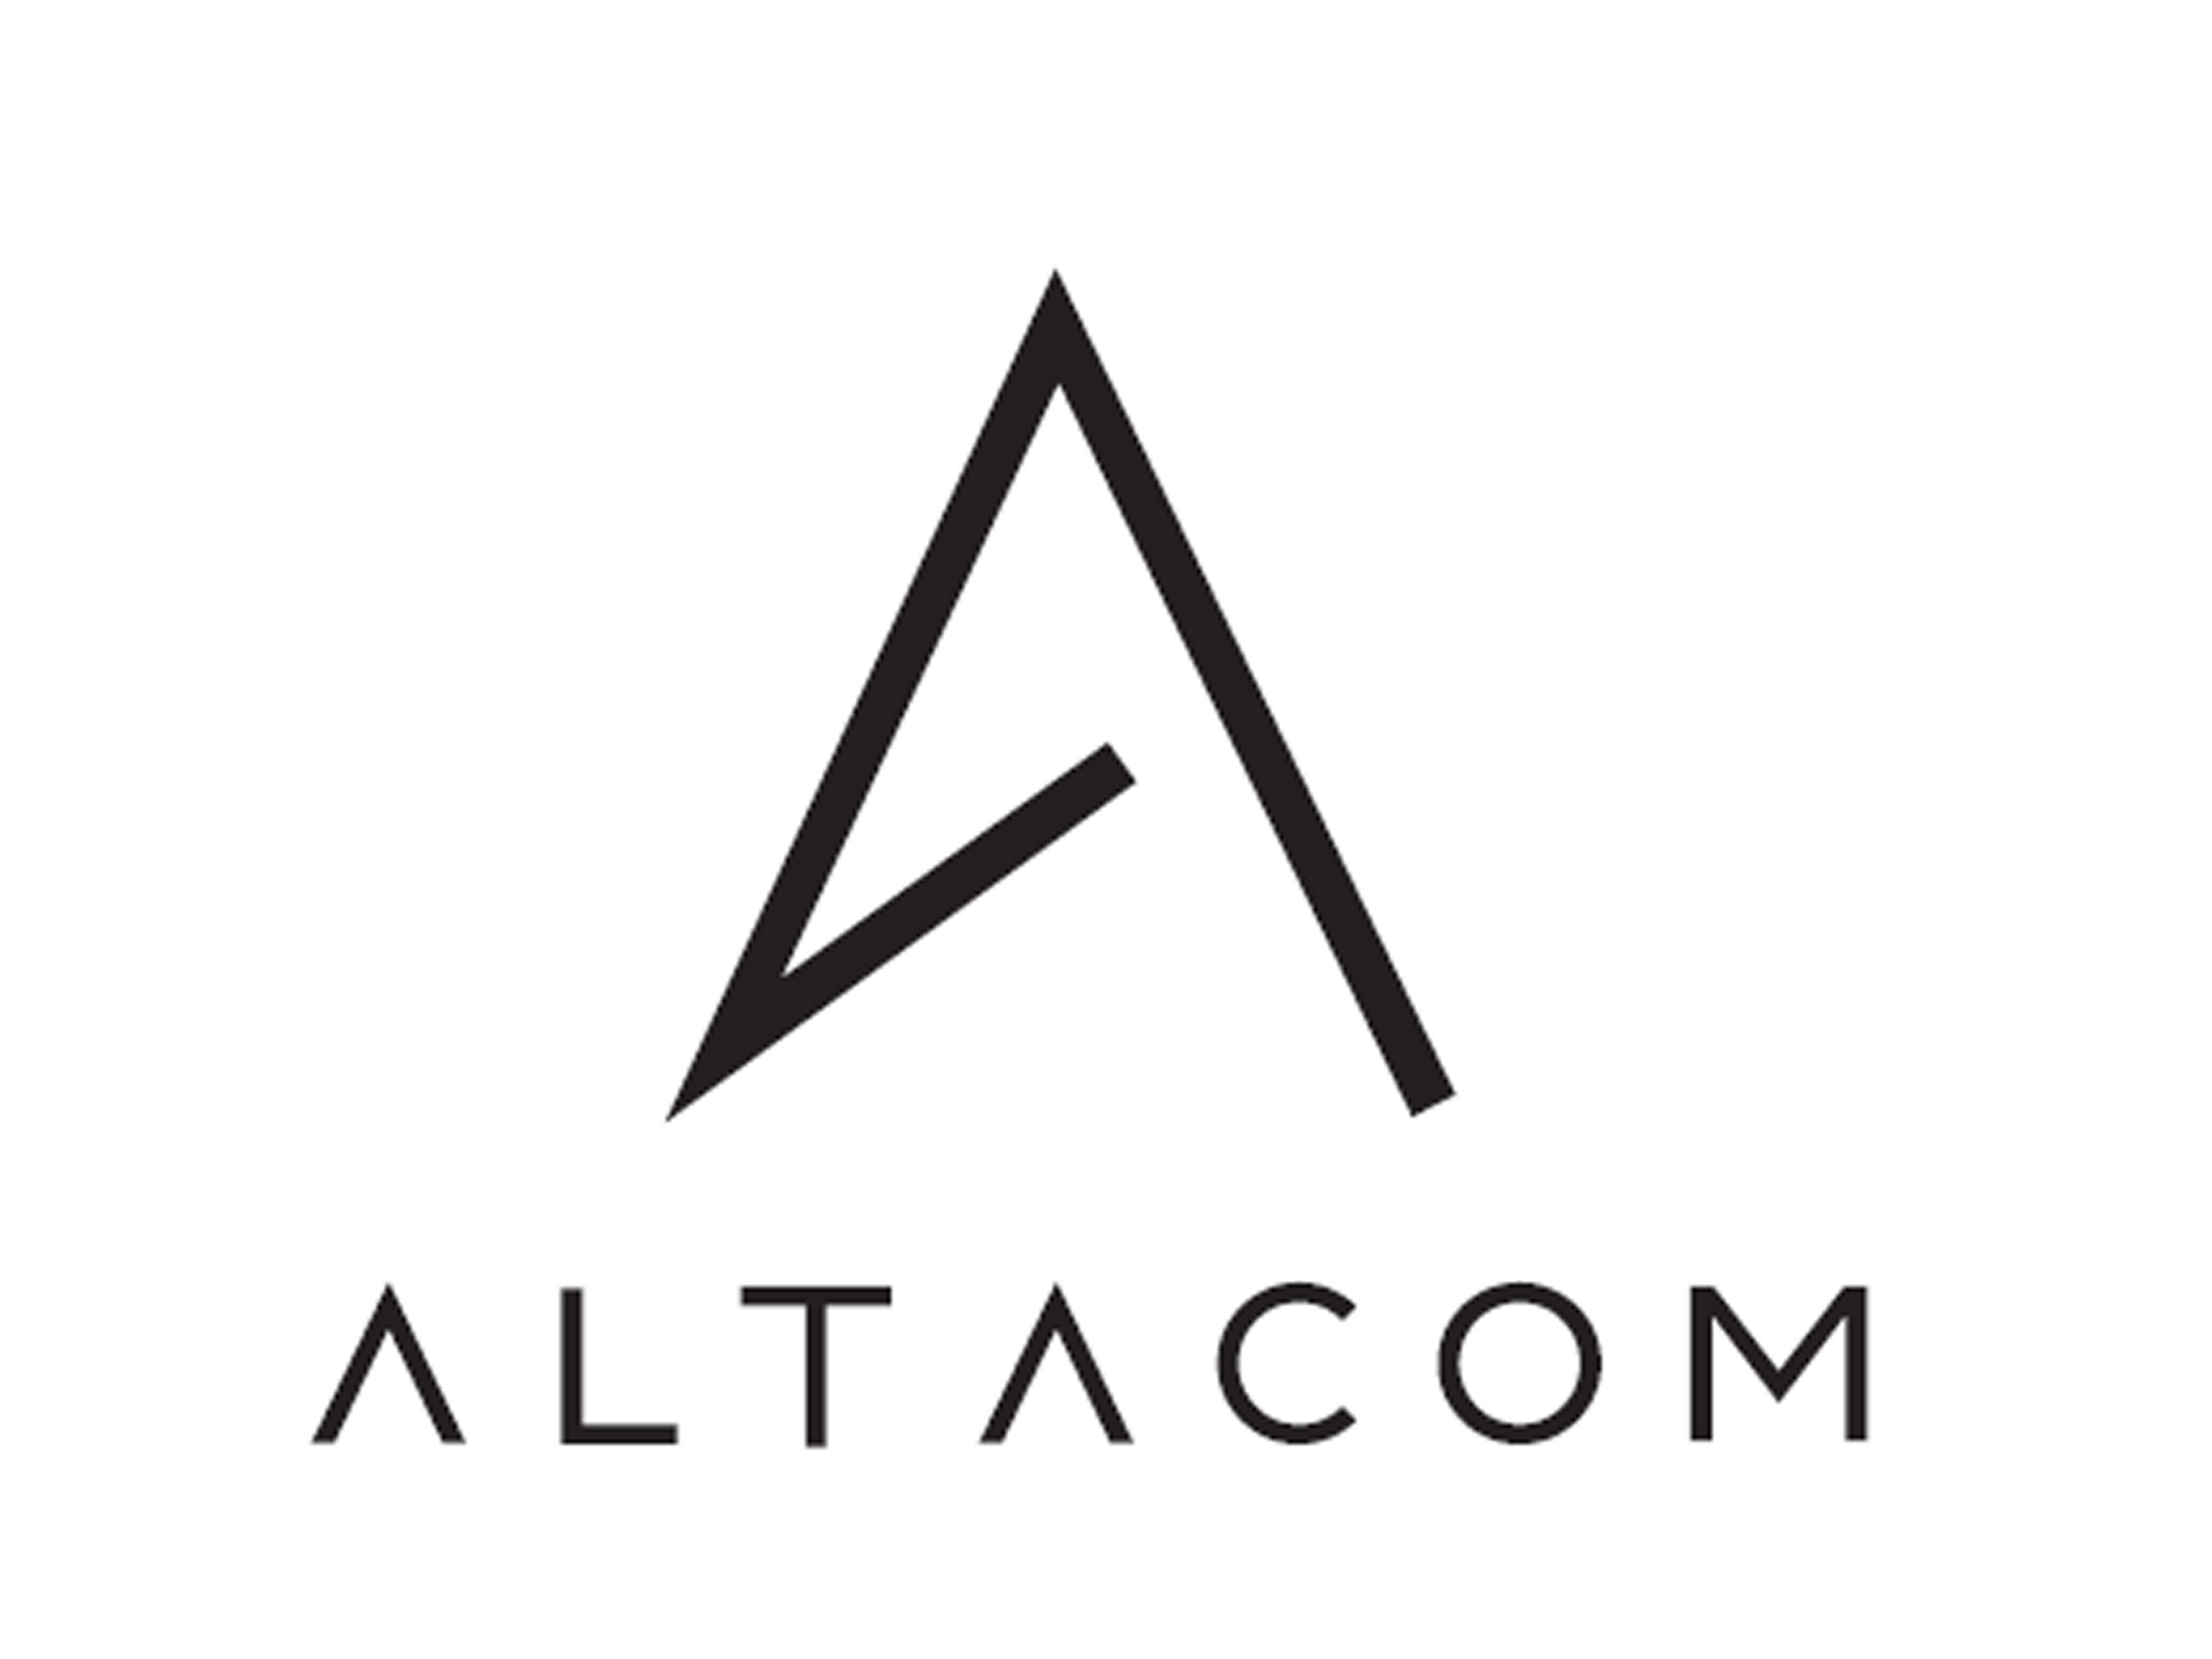 """Altacom - Altacom ia a company that has evolved as the natural continuation of the family's small factory Metacom. At the end of the 80's, the company had started to manufacture design furnishing specially oriented to """"space-saving"""" and necessity belonging to the reduced spaces of the contemporary habitat."""